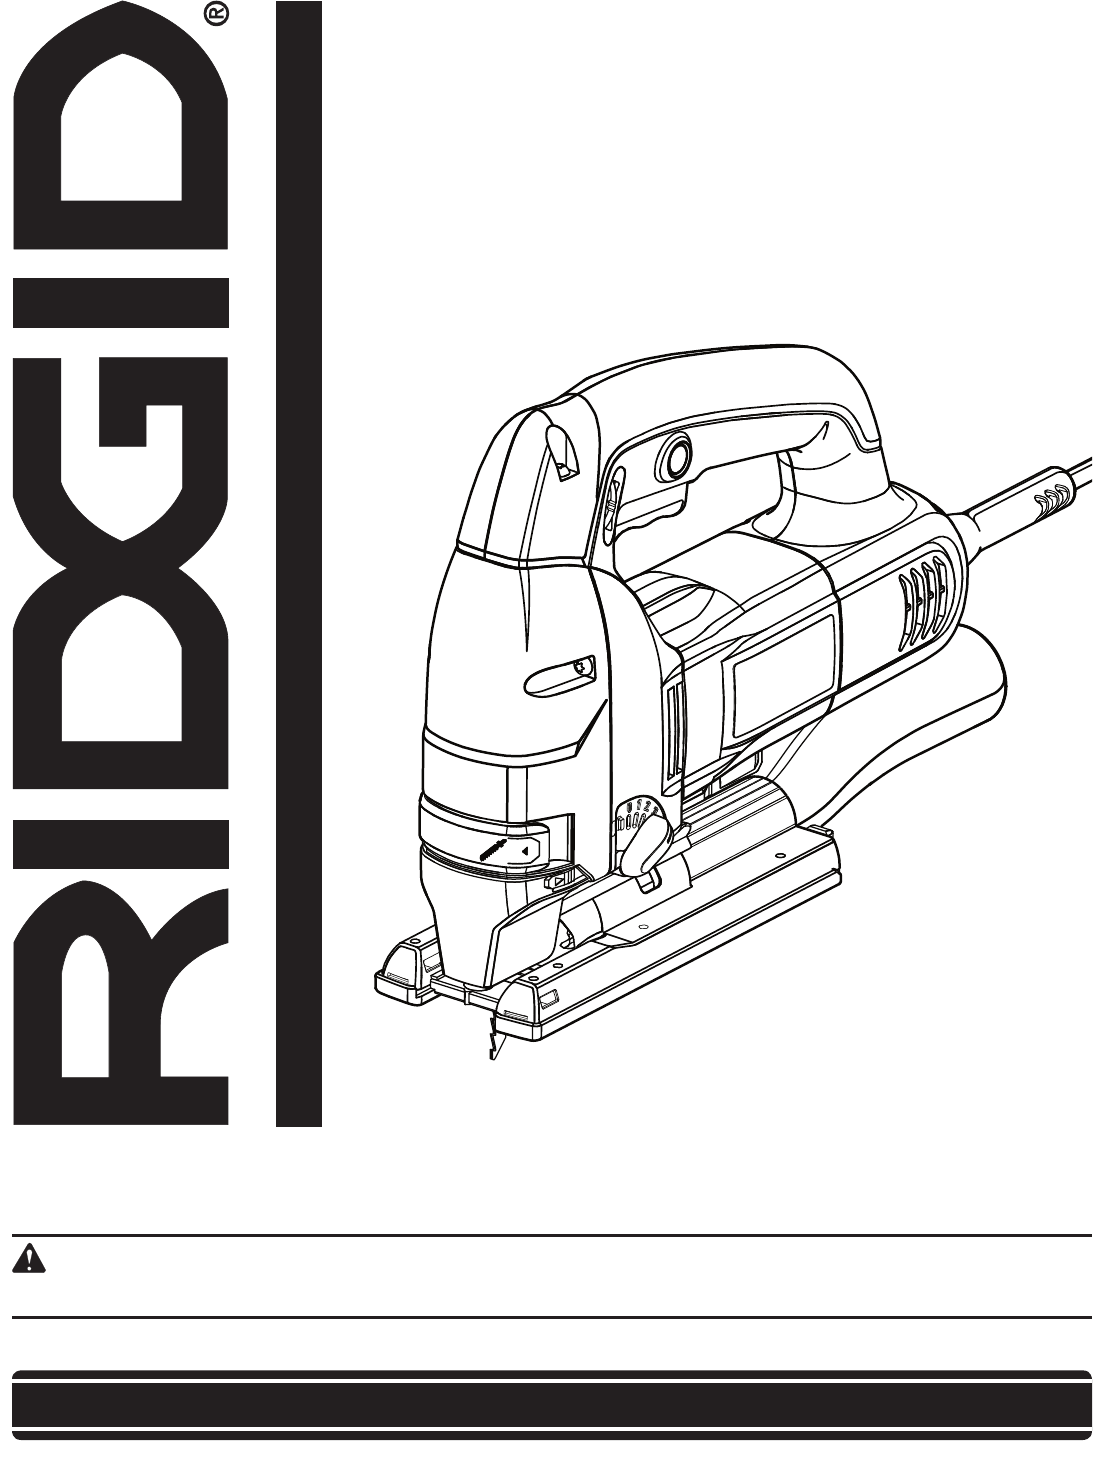 Ridgid saw r3121 user guide manualsonline keyboard keysfo Choice Image